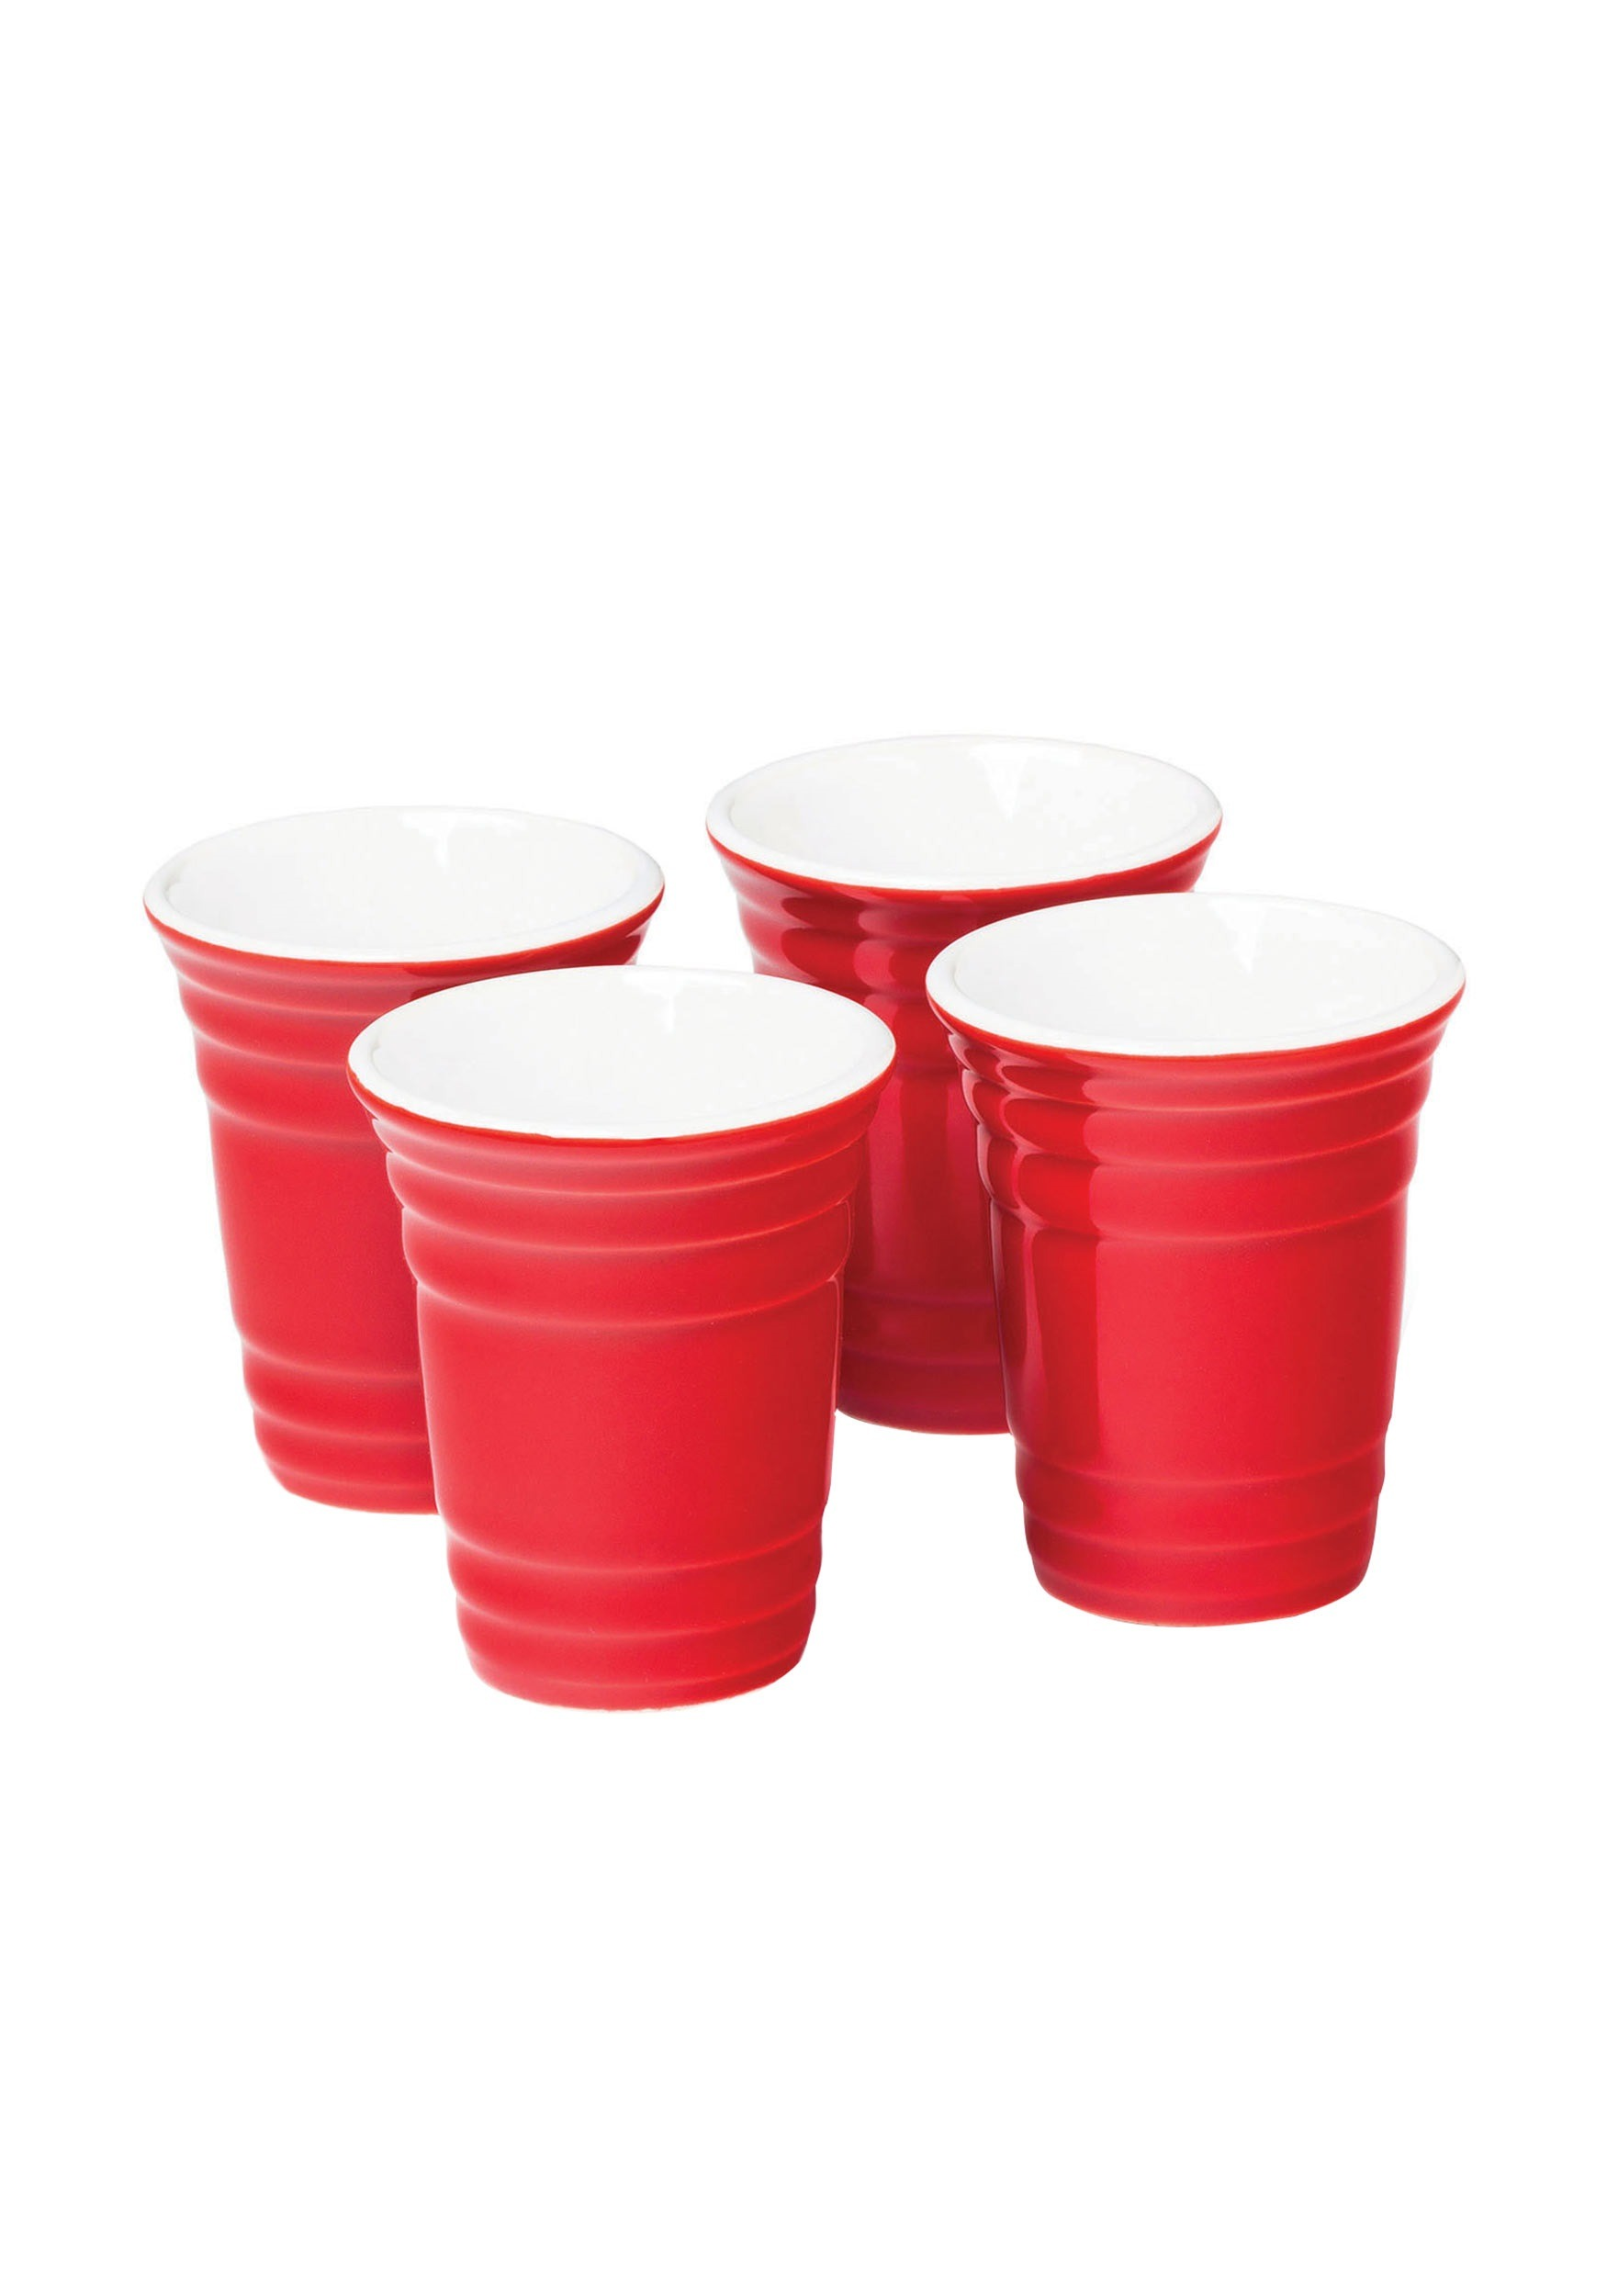 The Red Cup Shot Glass Set BMIBM1546